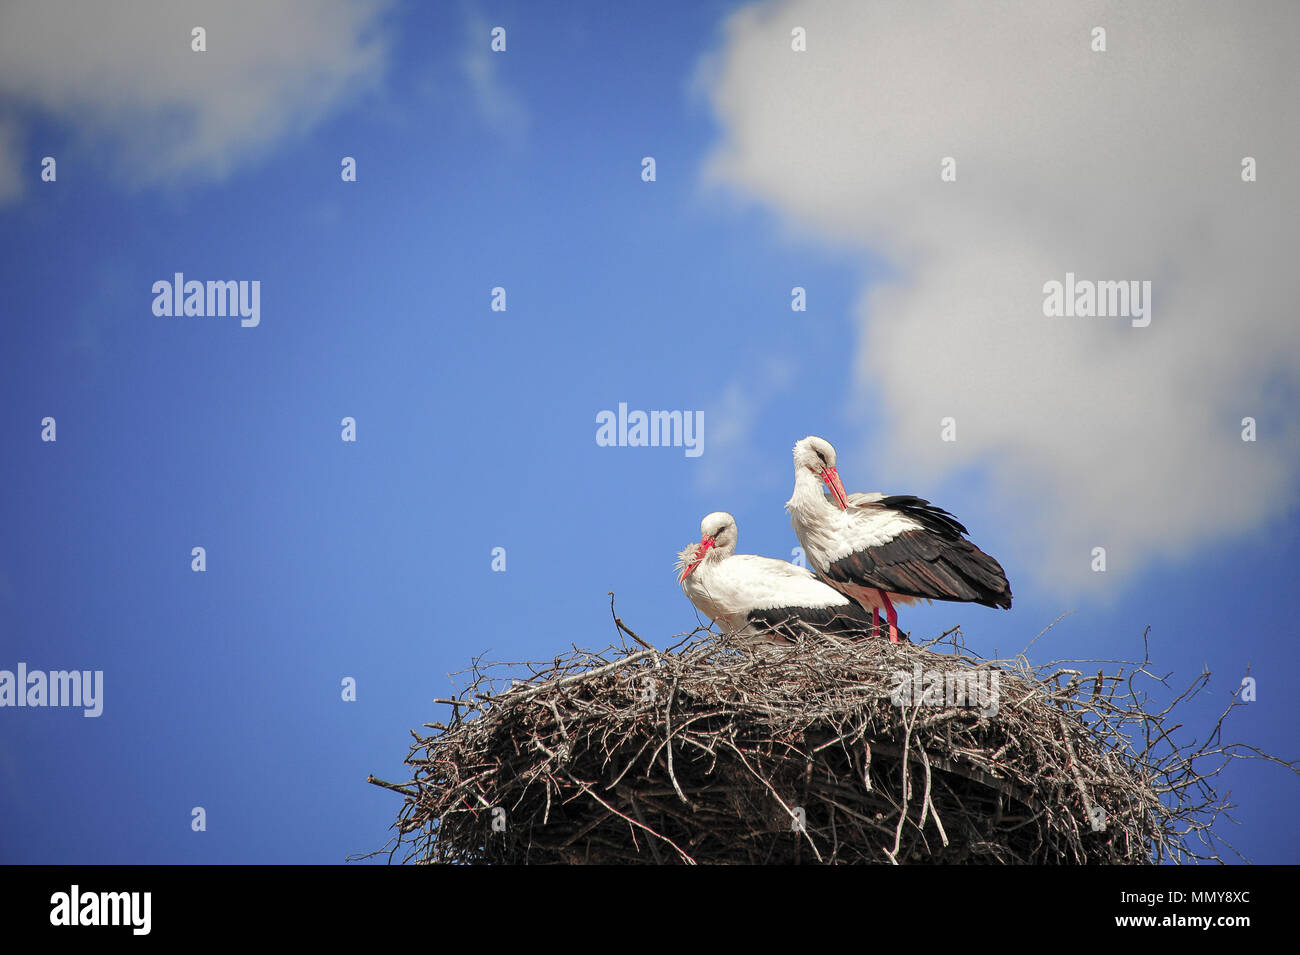 A pair of giant white storks (Ciconia ciconia) sit on their nest, silhouetted high up, against a deep blue sky background. - Stock Image